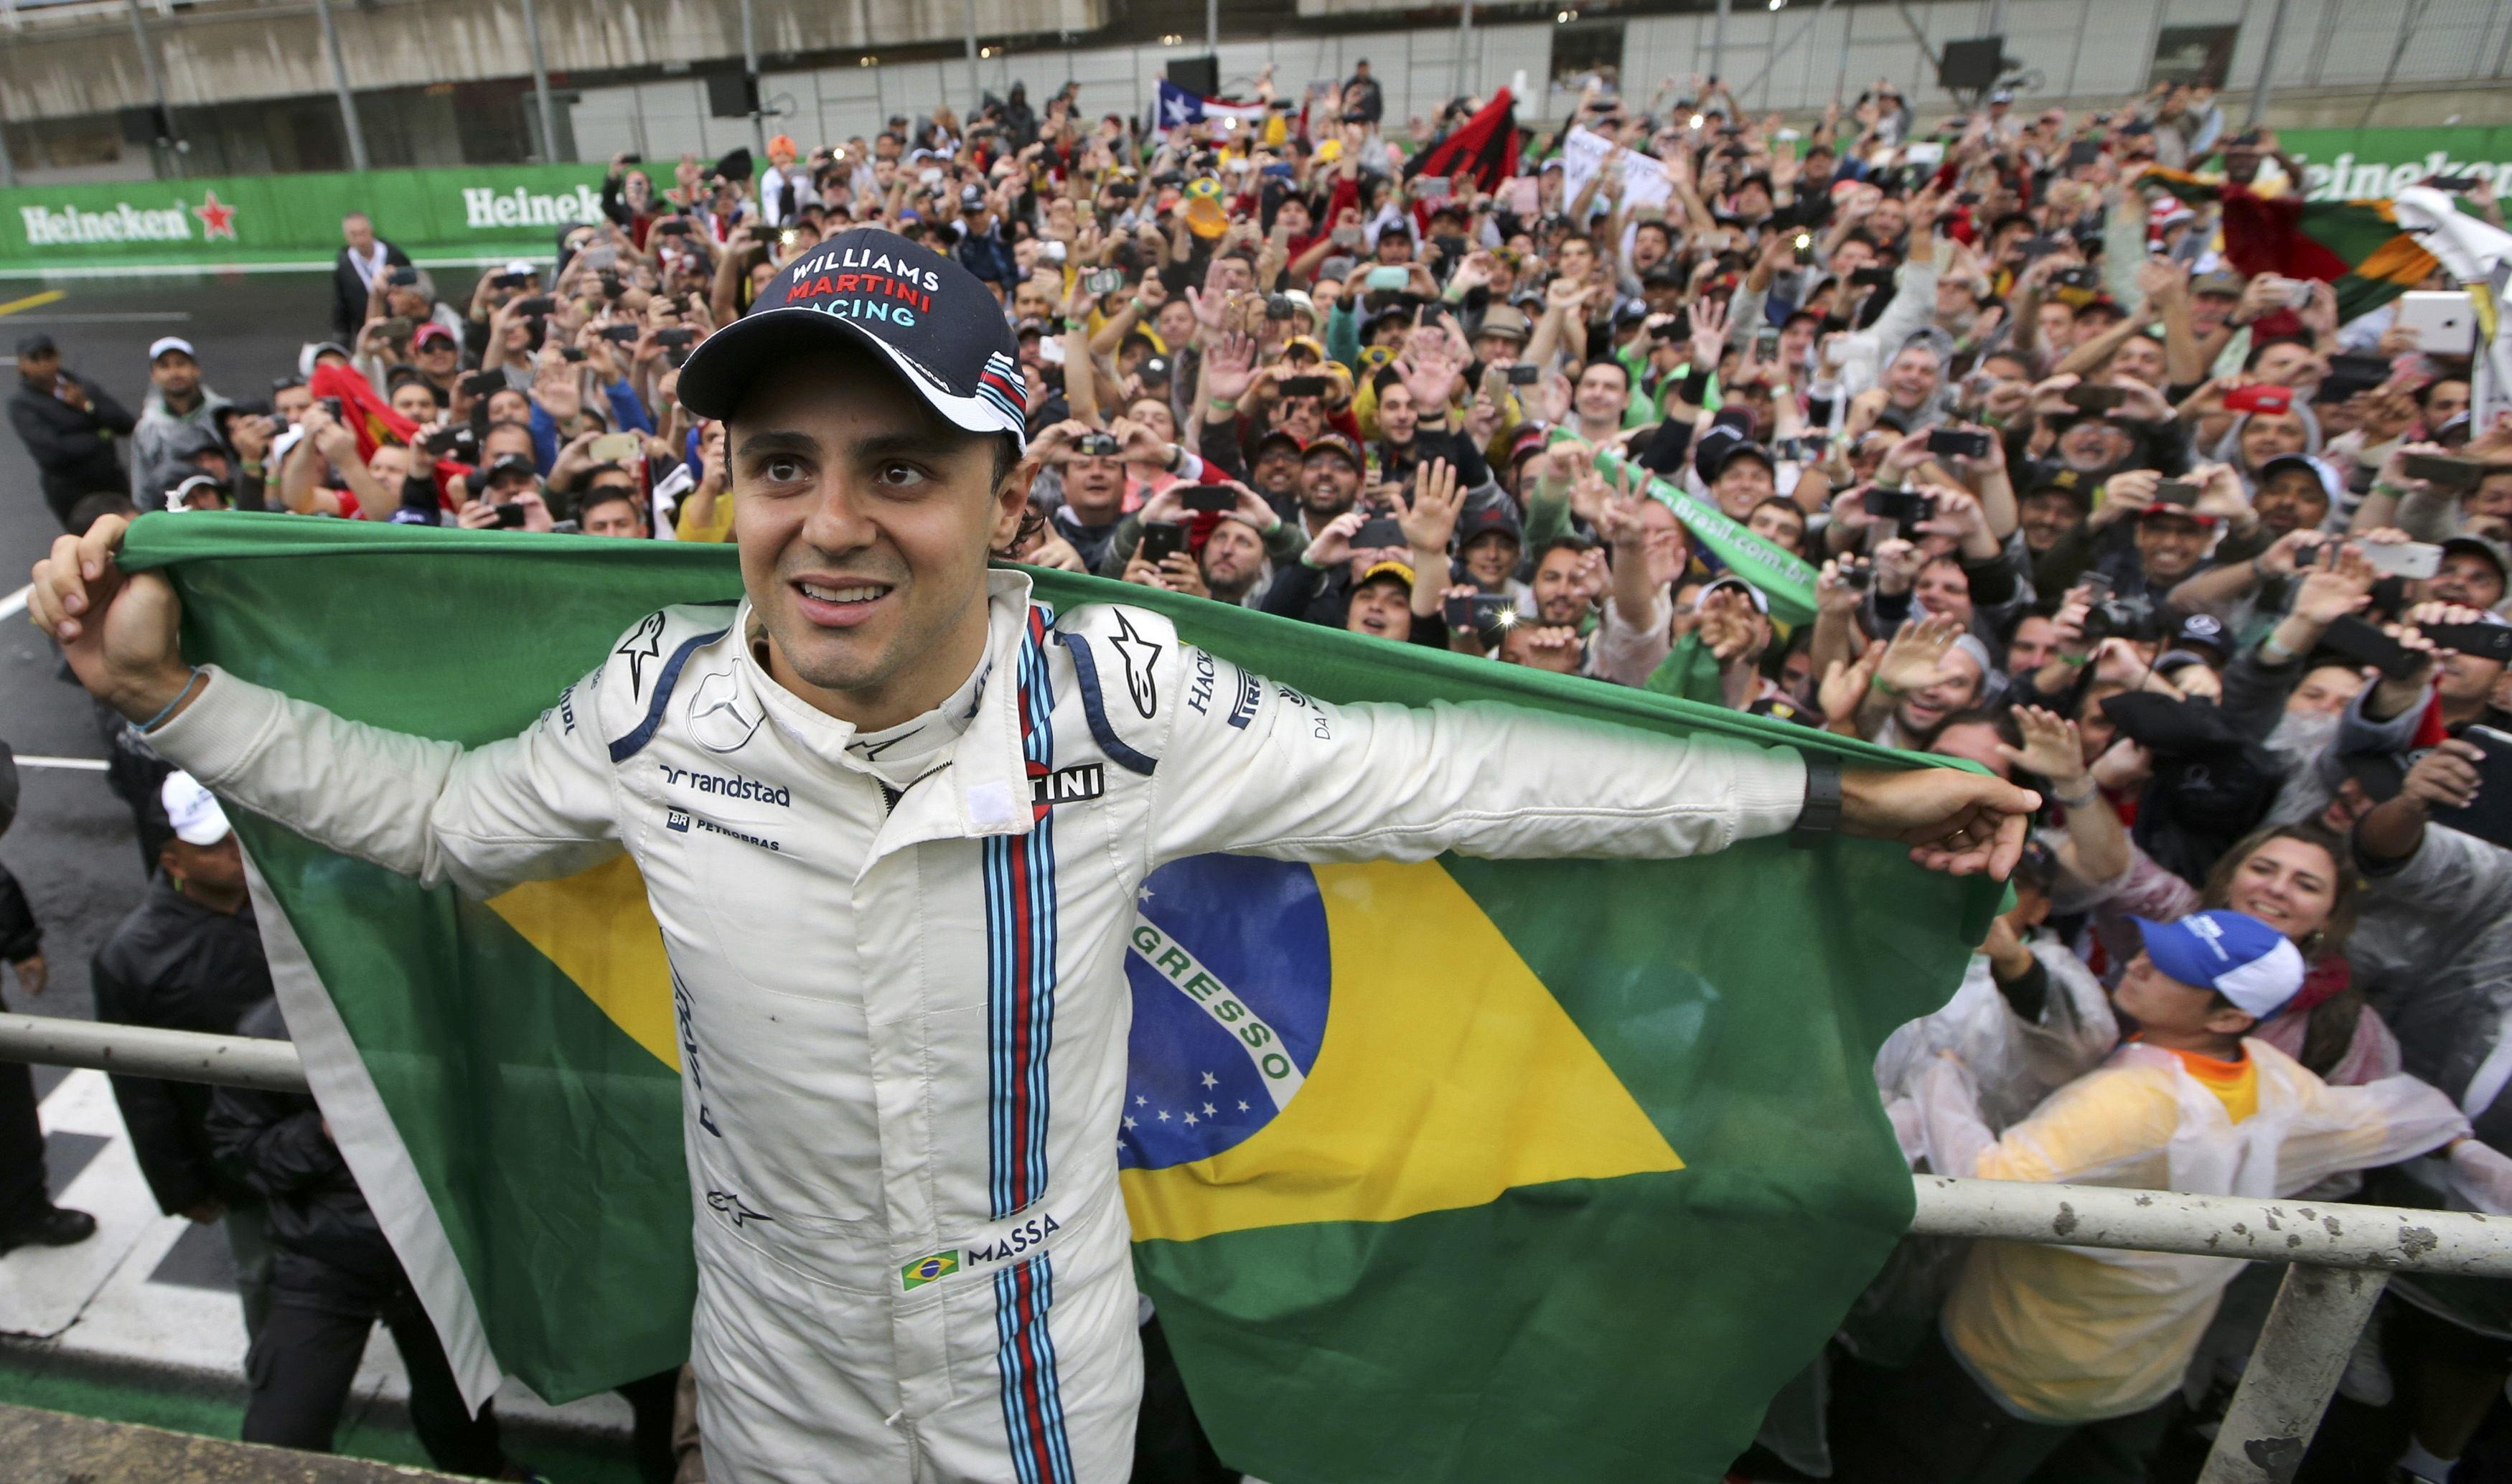 The Brazilian enjoyed five podium finishes as a Williams driver